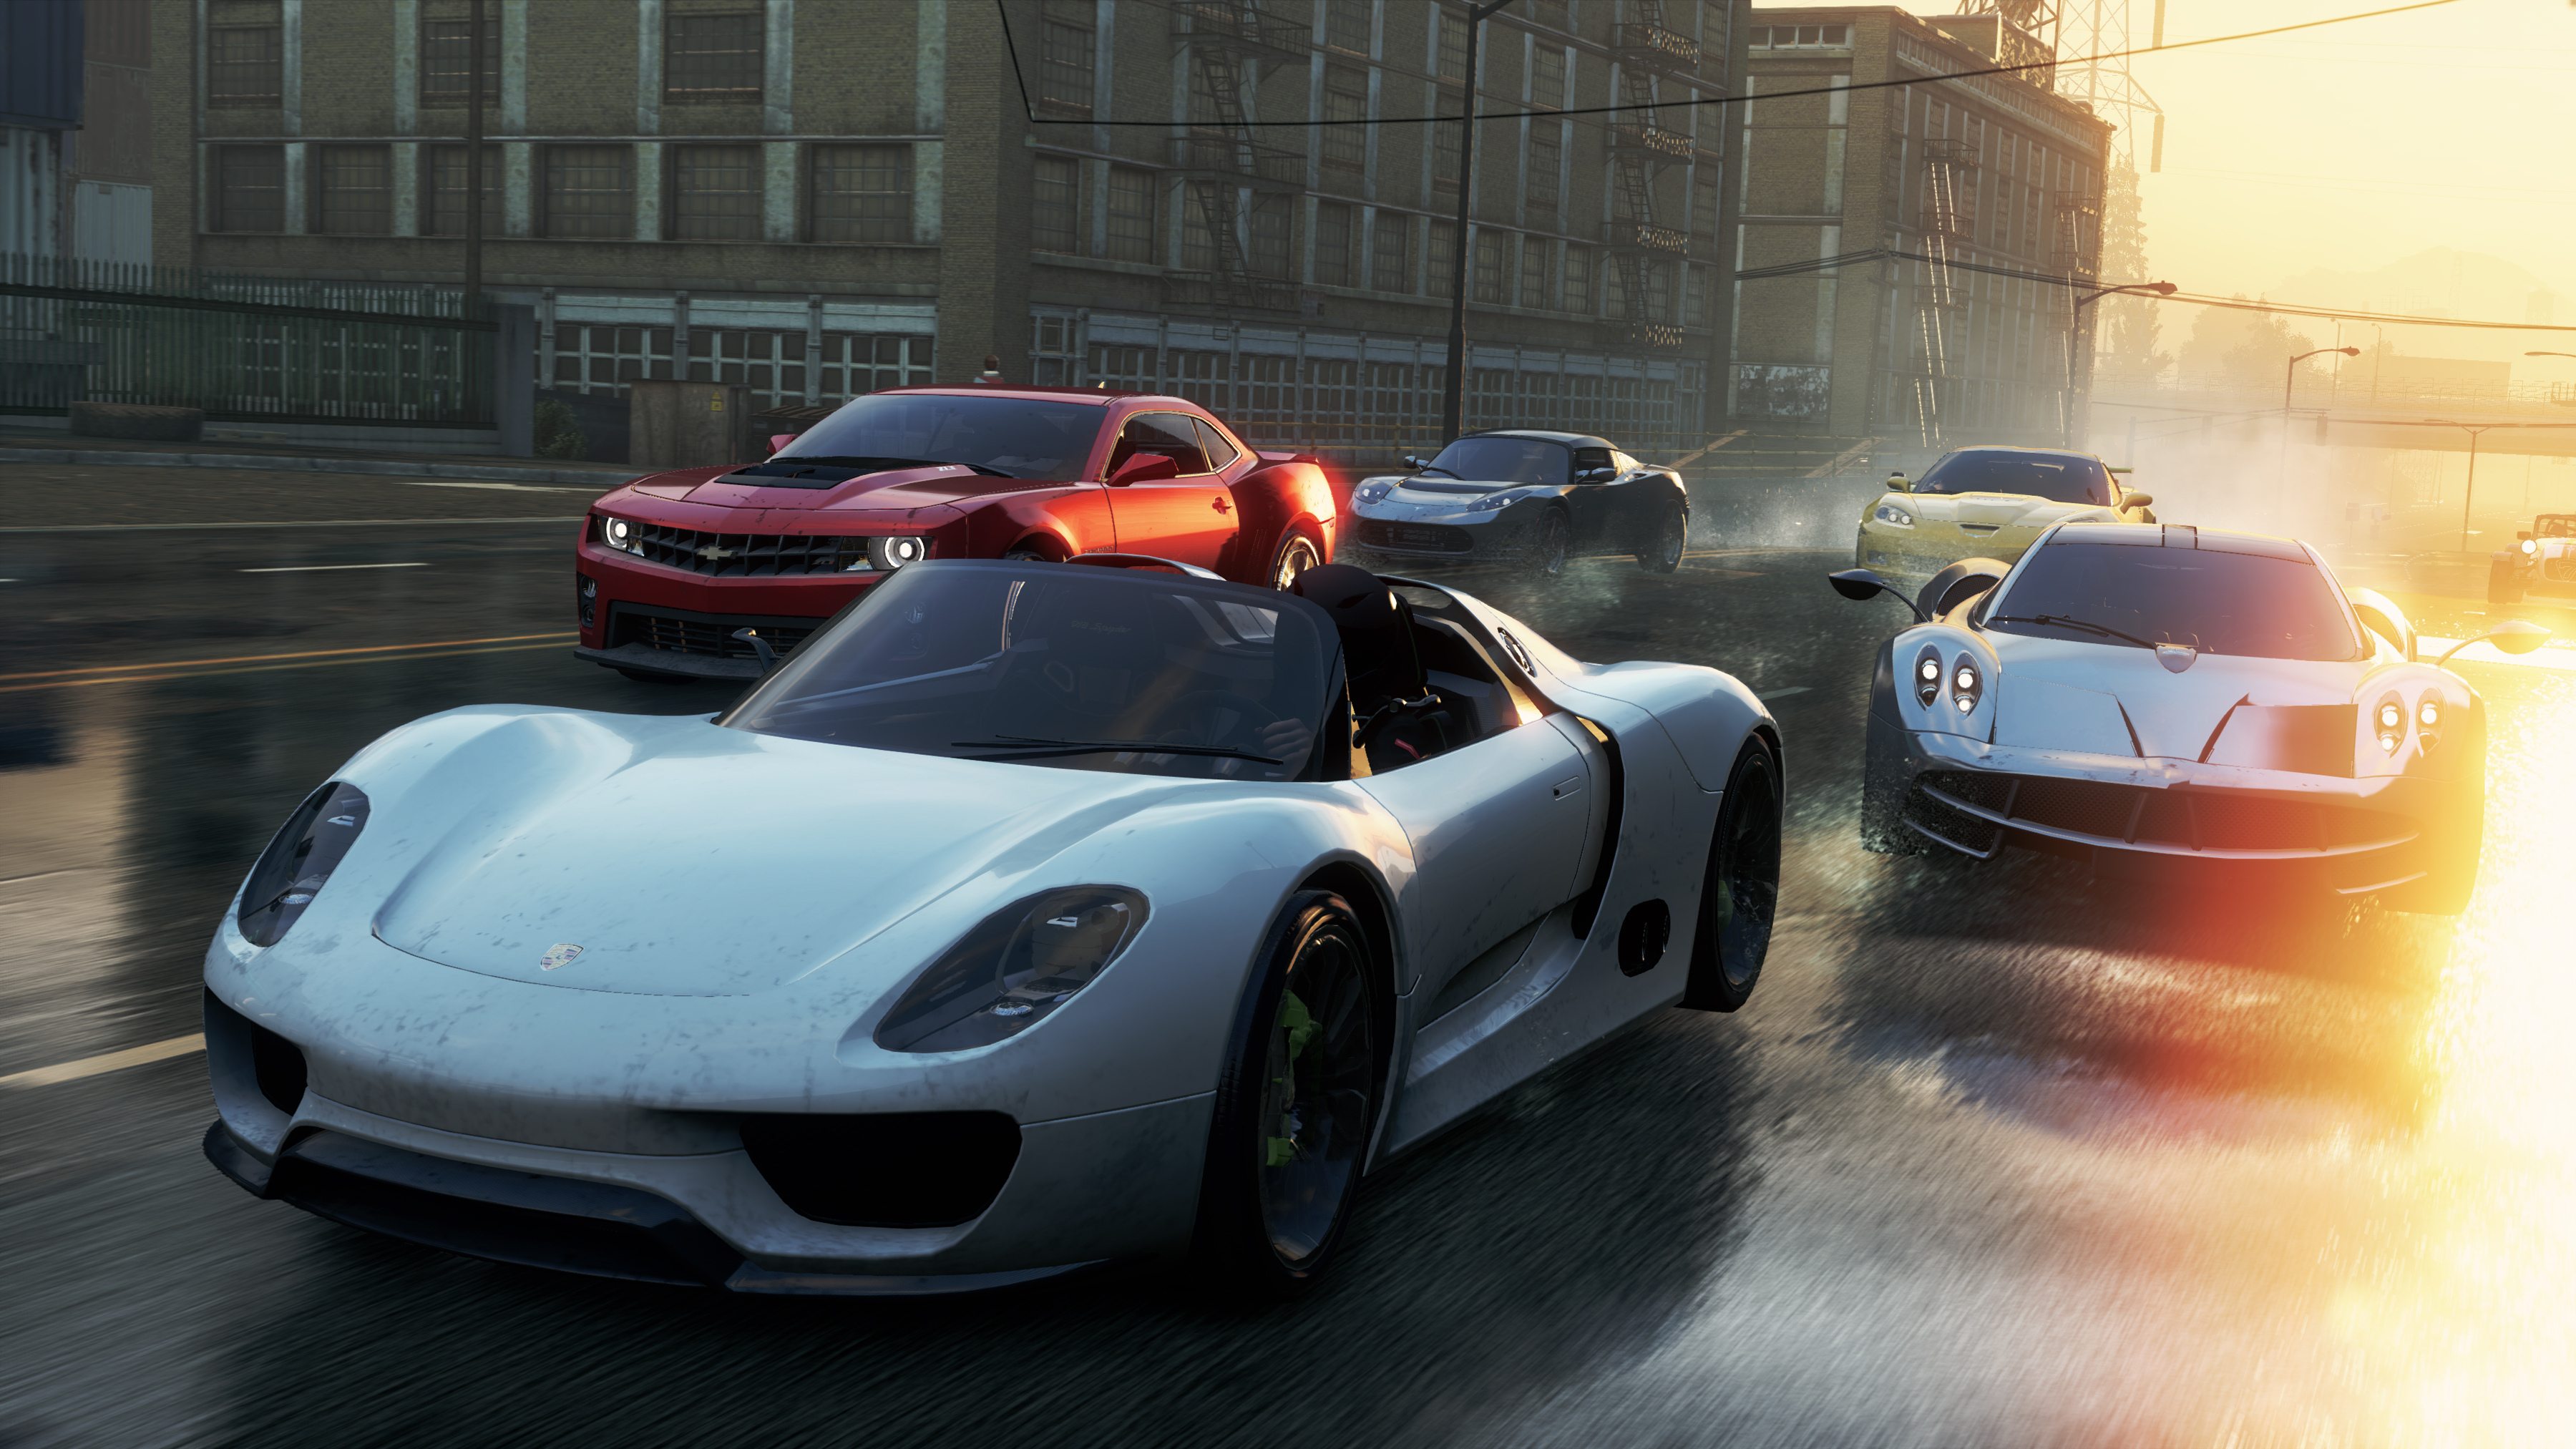 Hd Wallpaper Need For Speed Most Wanted 2012 Wallpaper Hd